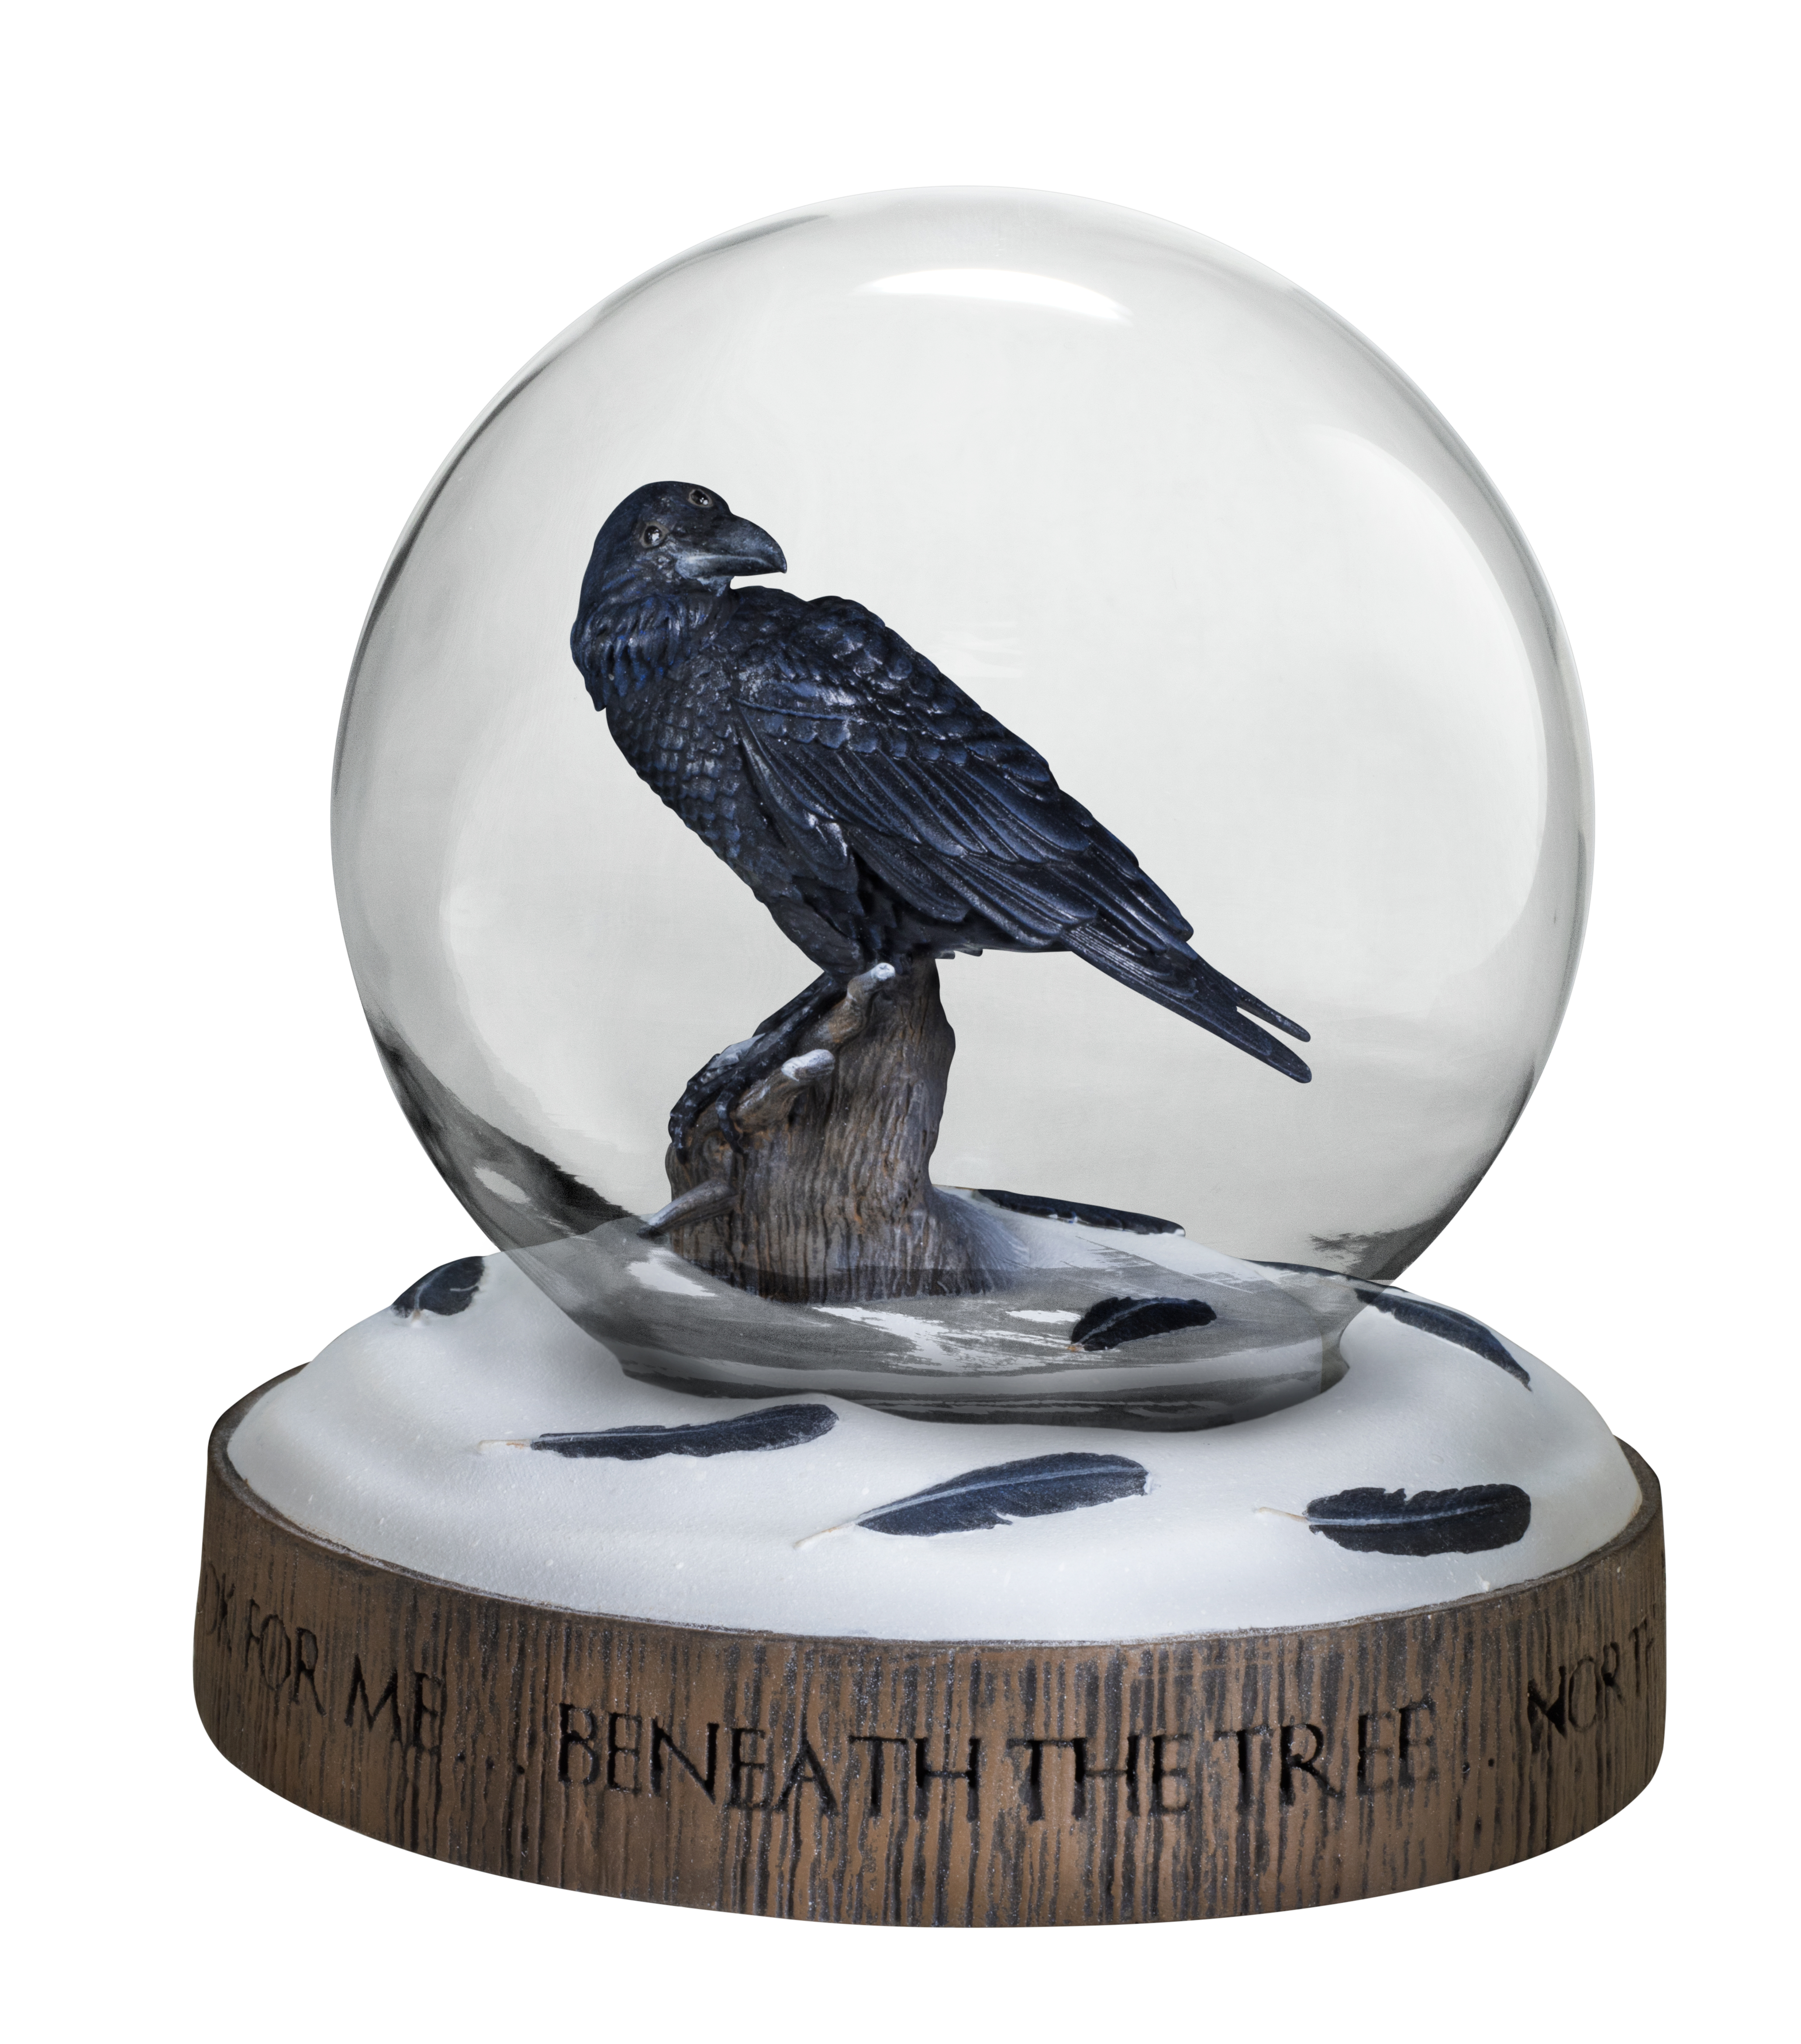 Nycc 2016 Dark Horse And Hbo Add Second Game Of Thrones Snow Globe To Popular Product Line Blog Dark Horse Comics